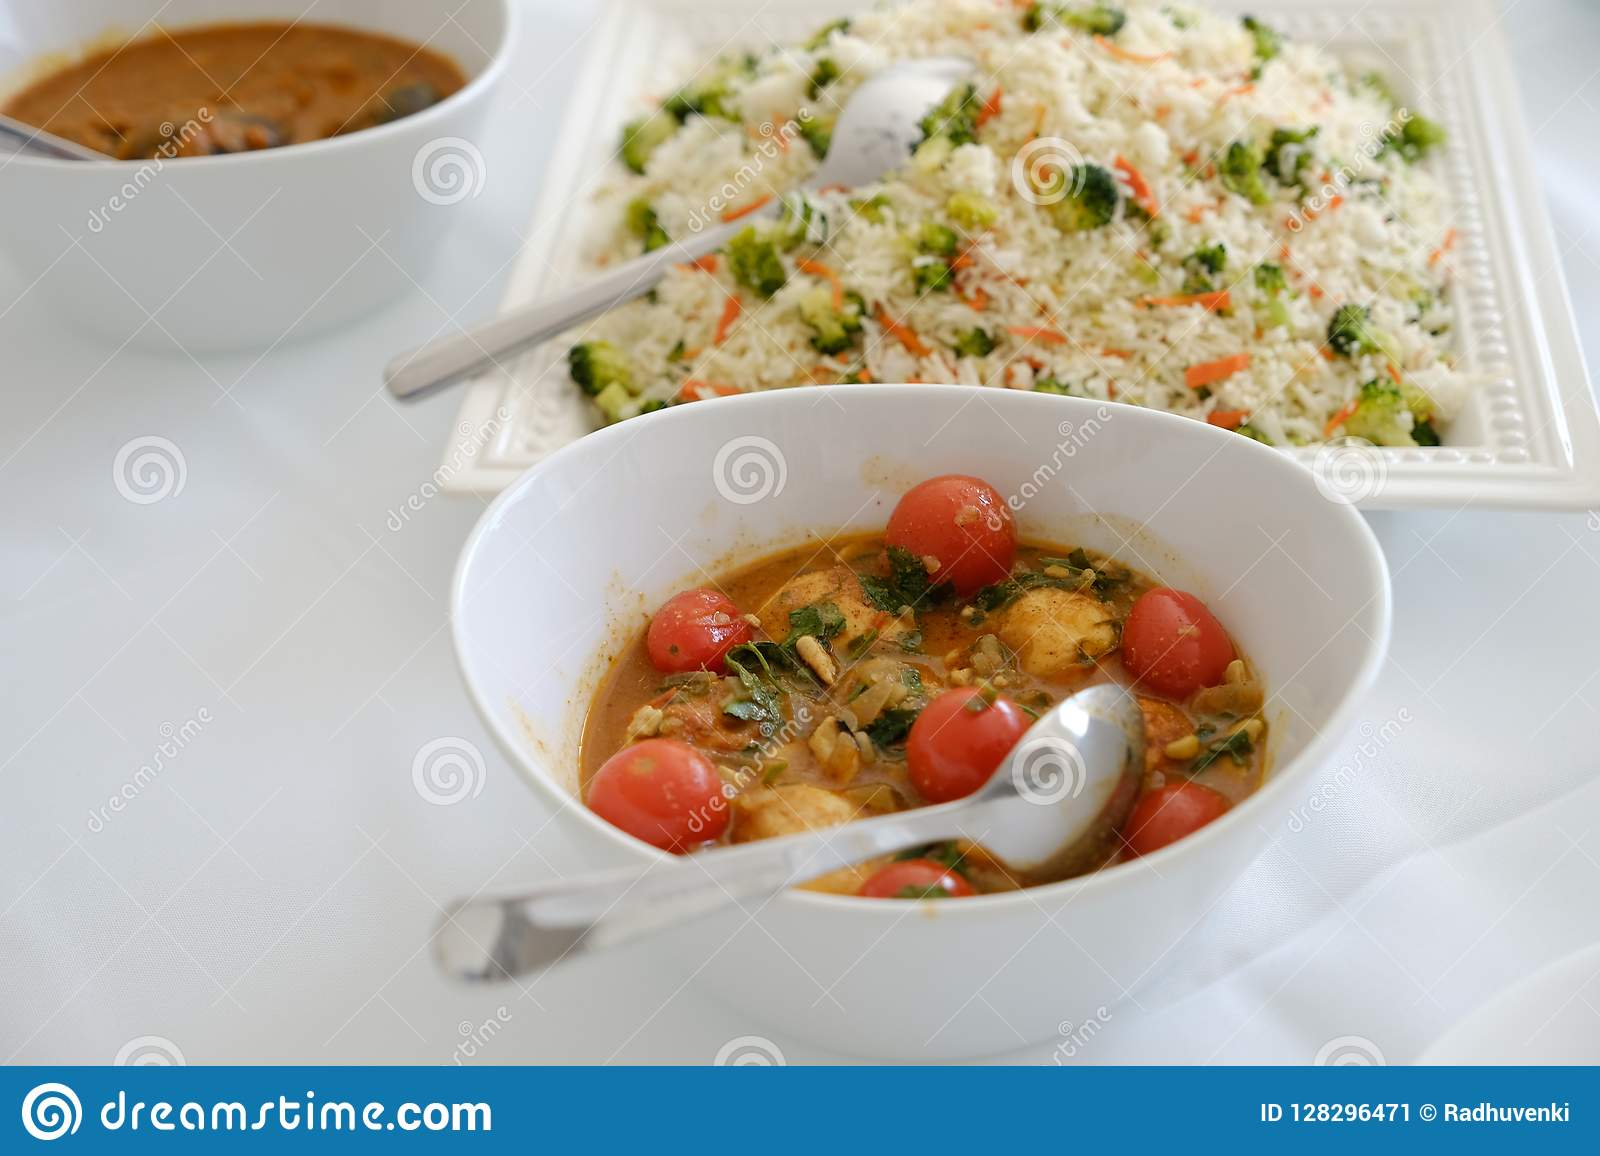 Healthy Spicy Vegetable Rice Indian Food In A Bowl With Side